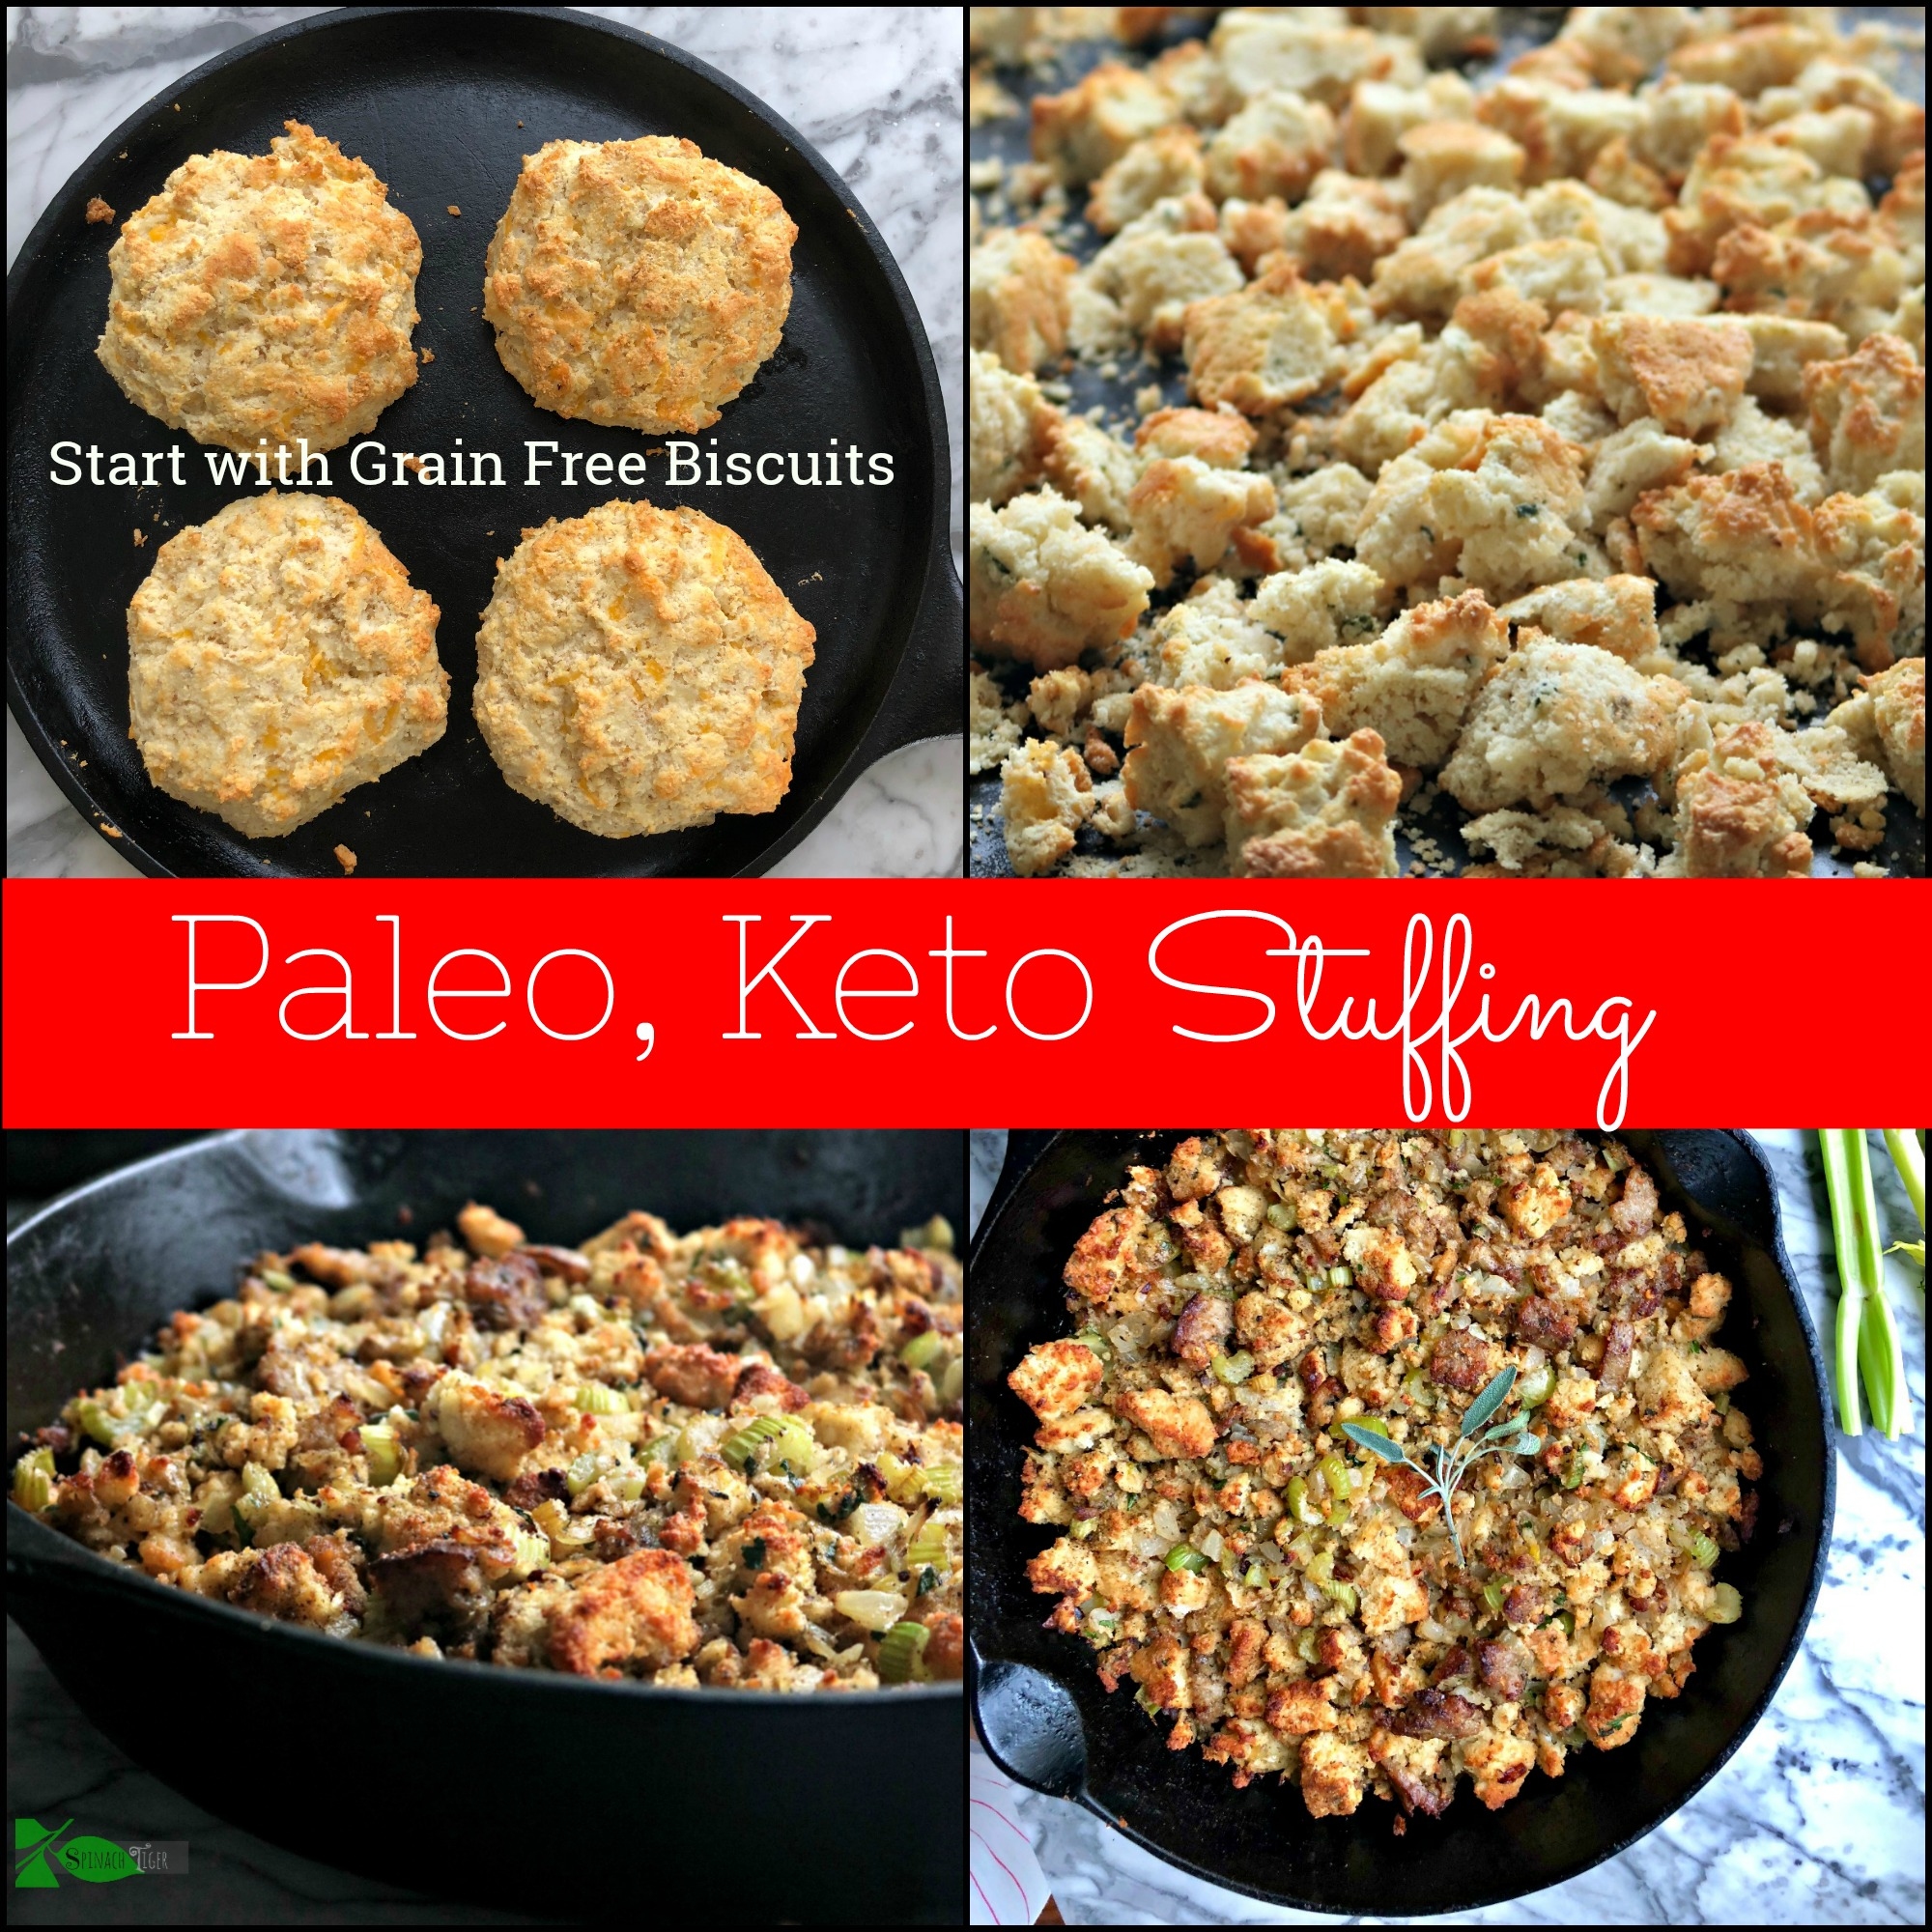 Make Grain Free Stuffing, Keto and Low Carb from Spinach Tiger